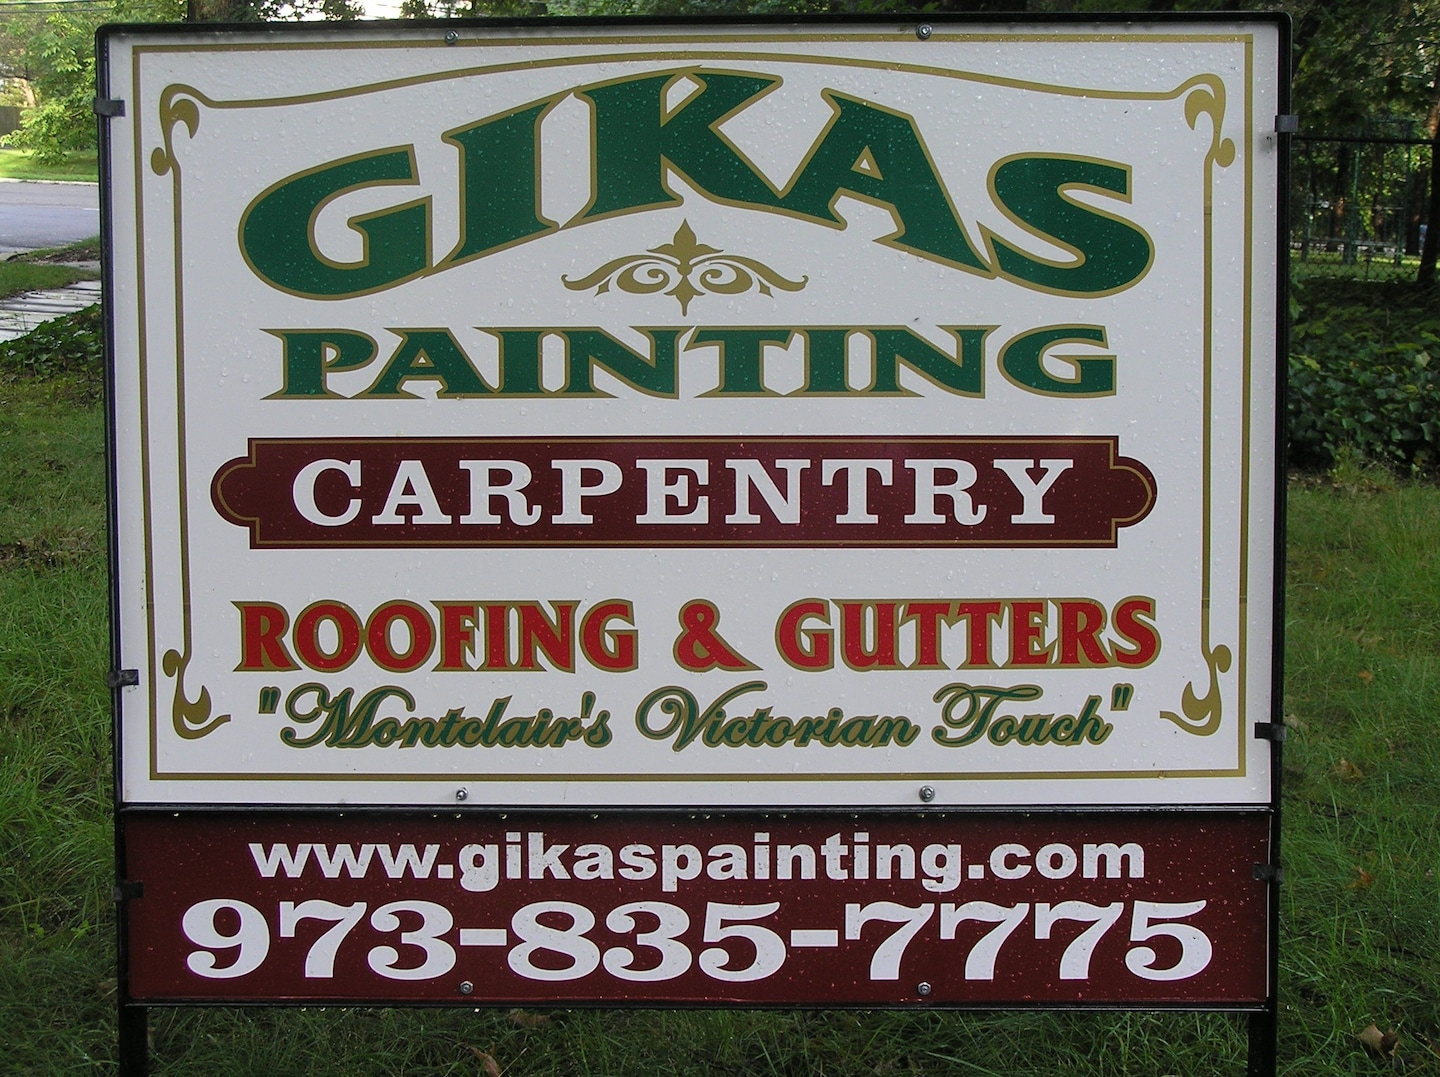 Gikas Painting, Roofing and Restoration